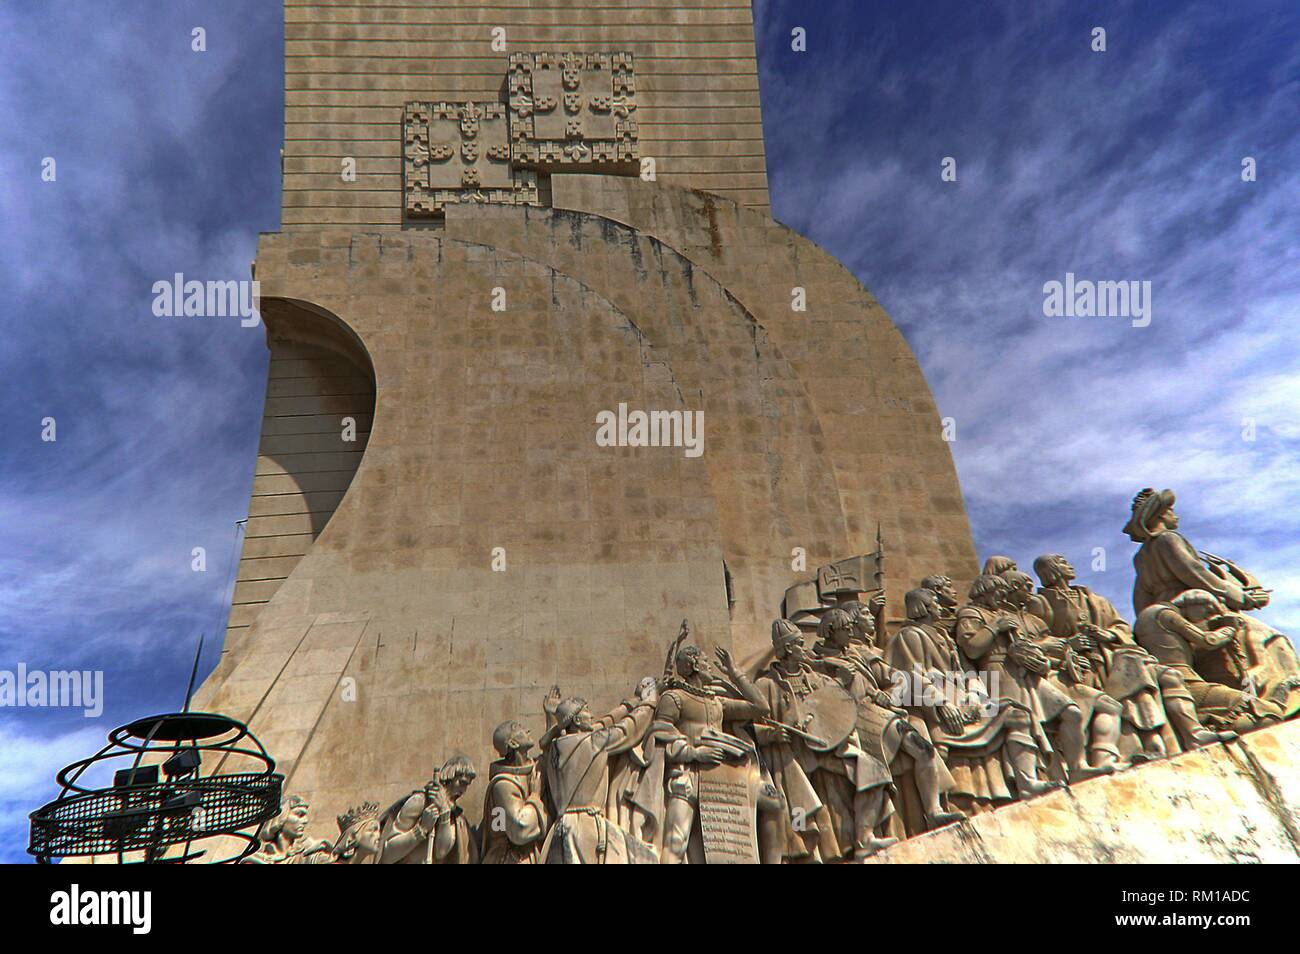 Lisbon (Portugal). Monument to the Discoveries in Lisbon. - Stock Image